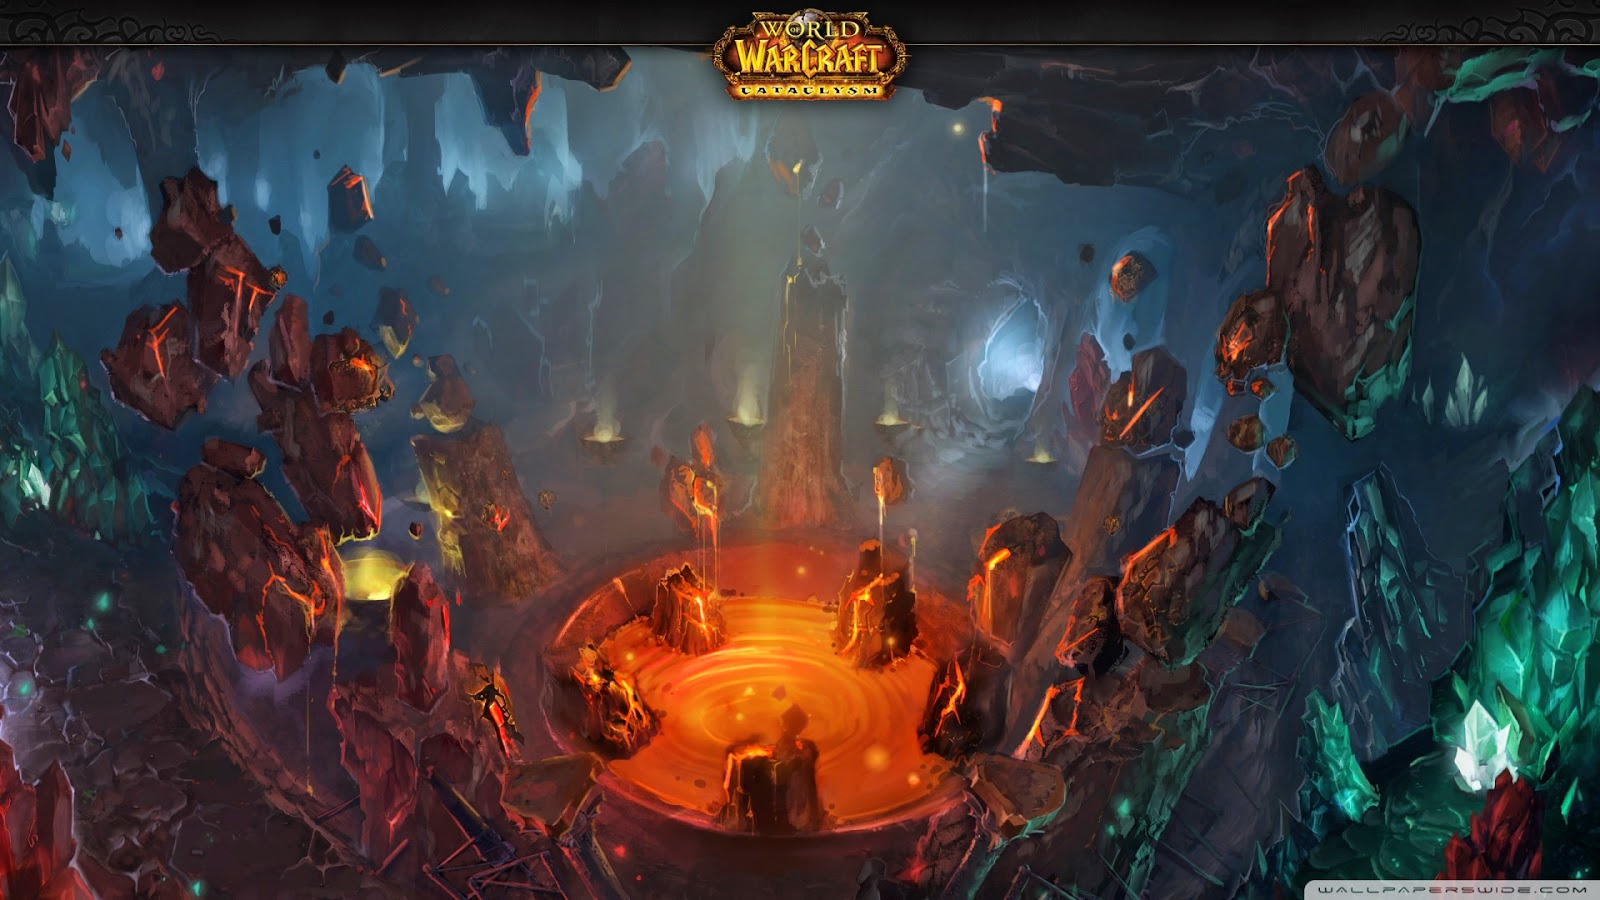 World Of Warcraft Wallpaper full HD